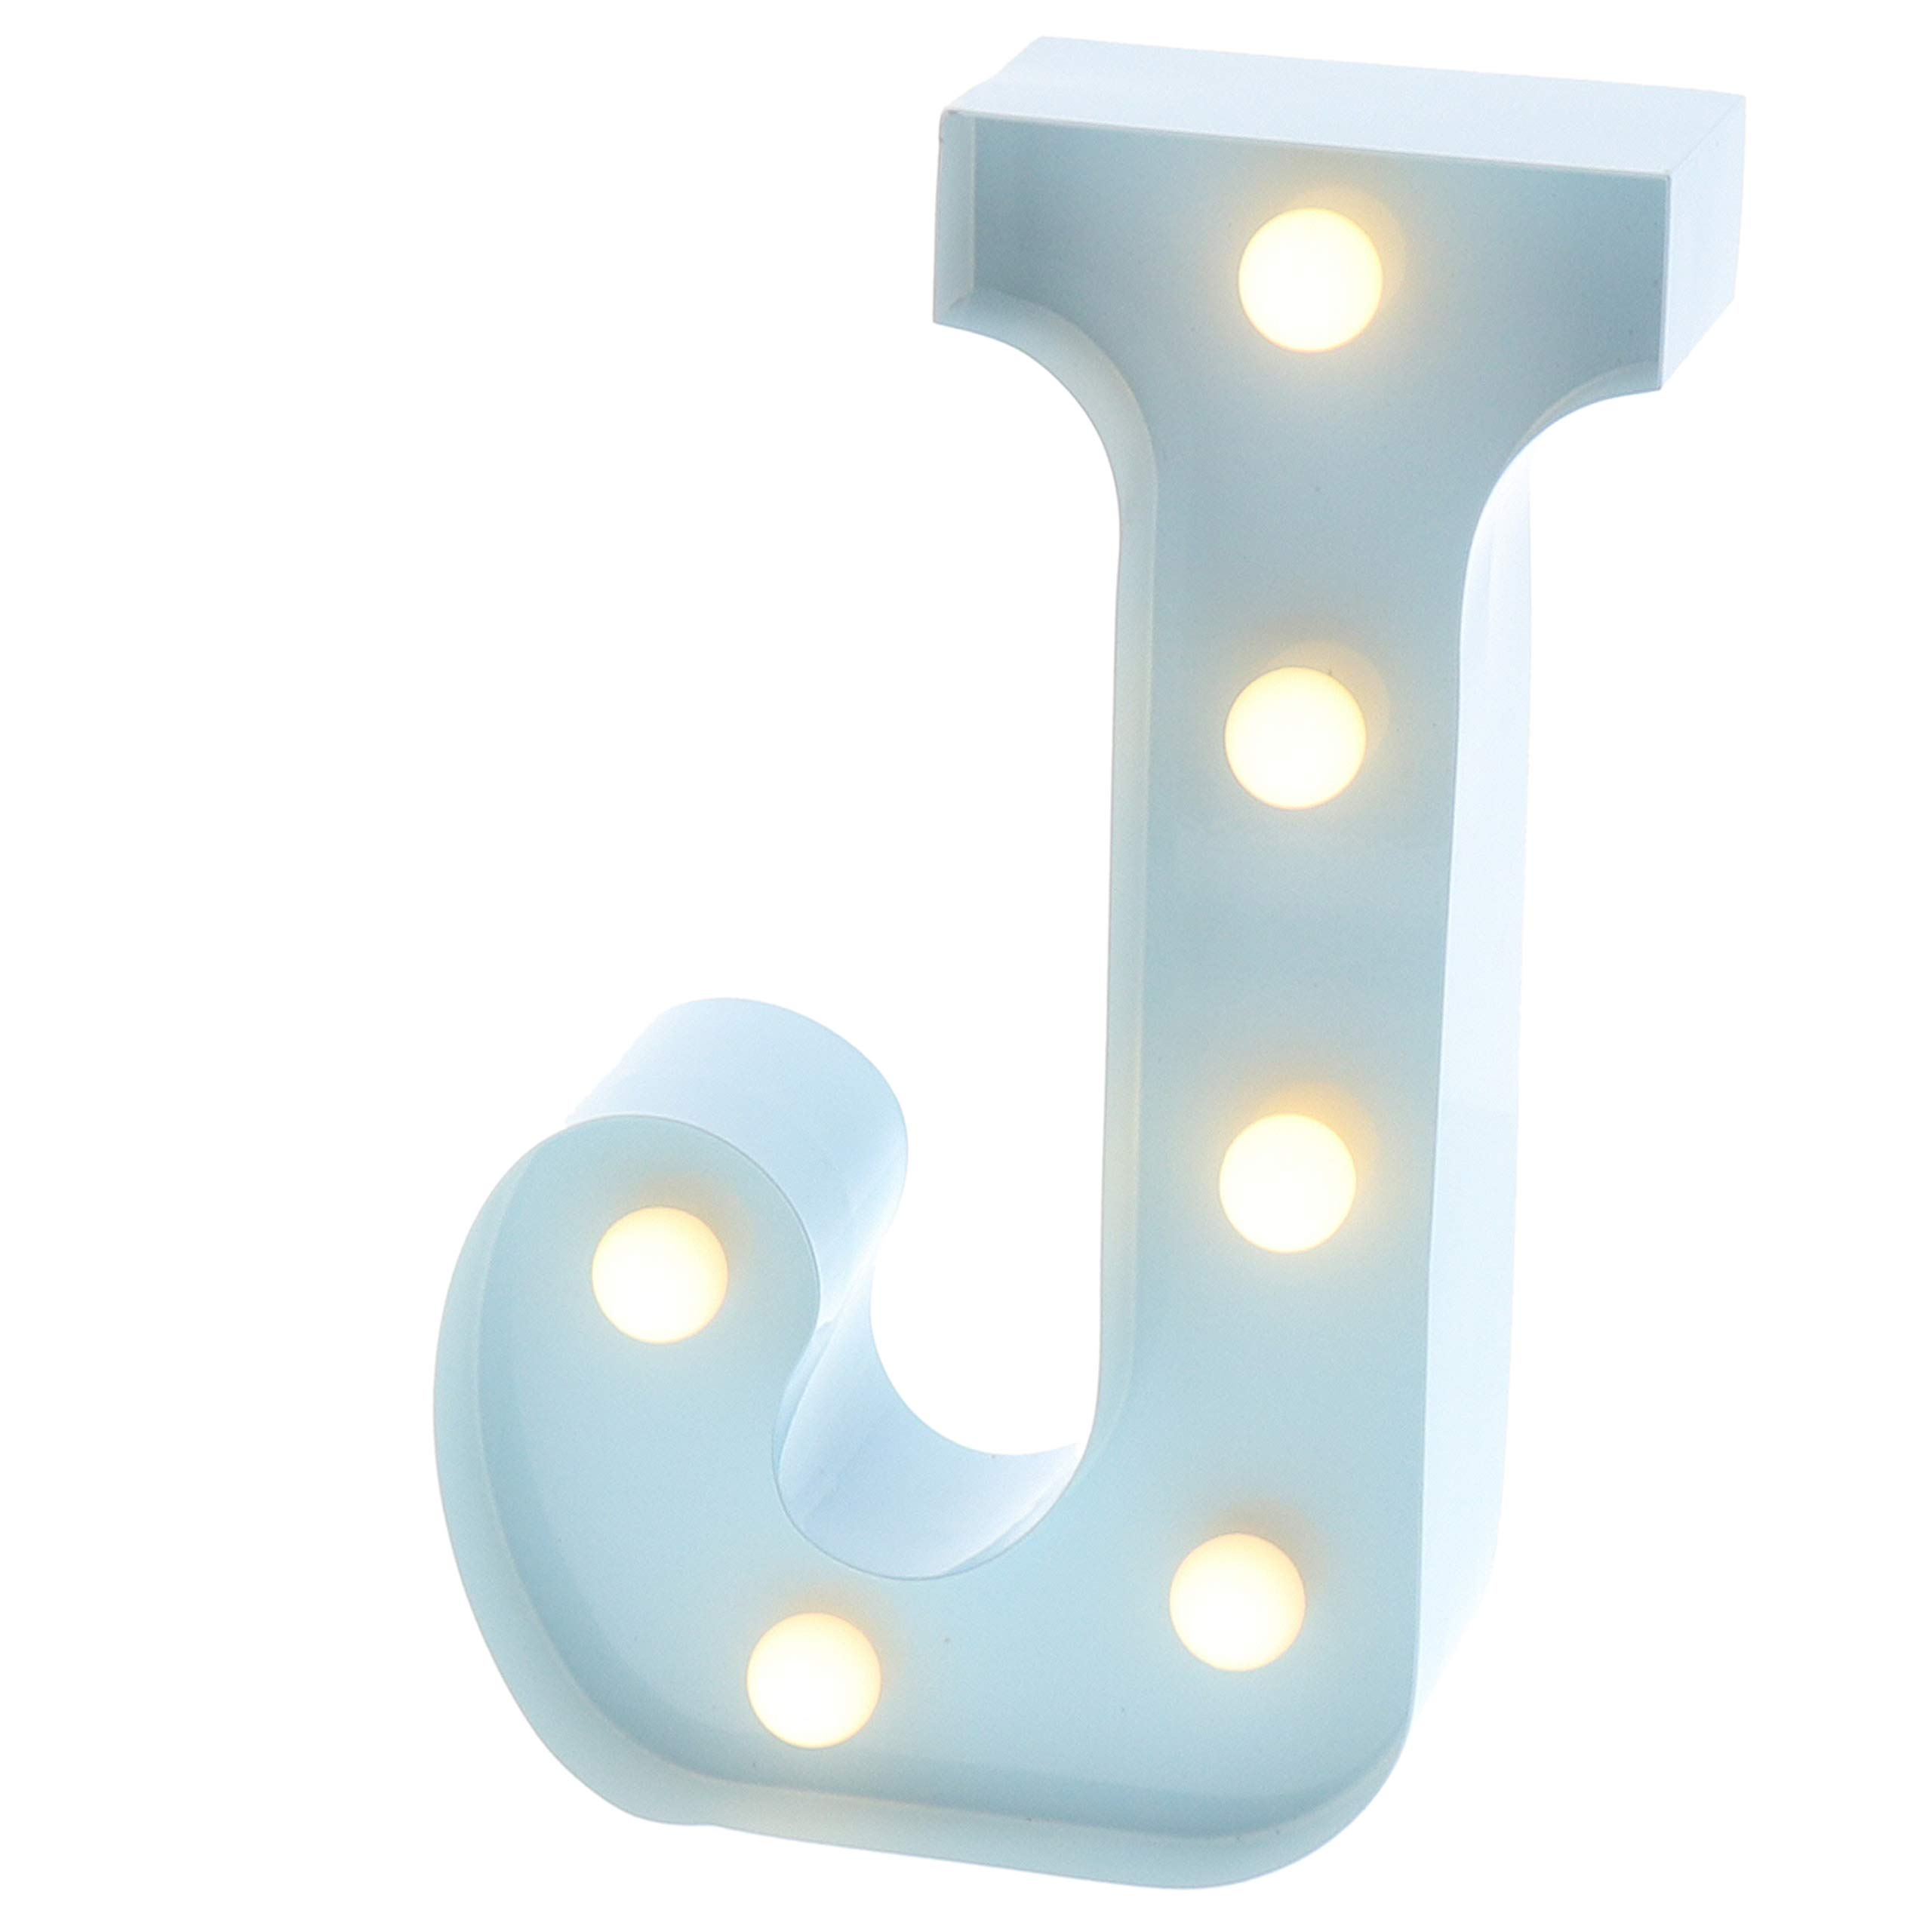 """Barnyard Designs Metal Marquee Letter Flat J Light Up Wall Initial Nursery Letter, Home and Event Decoration 9"""" (Baby Blue)"""